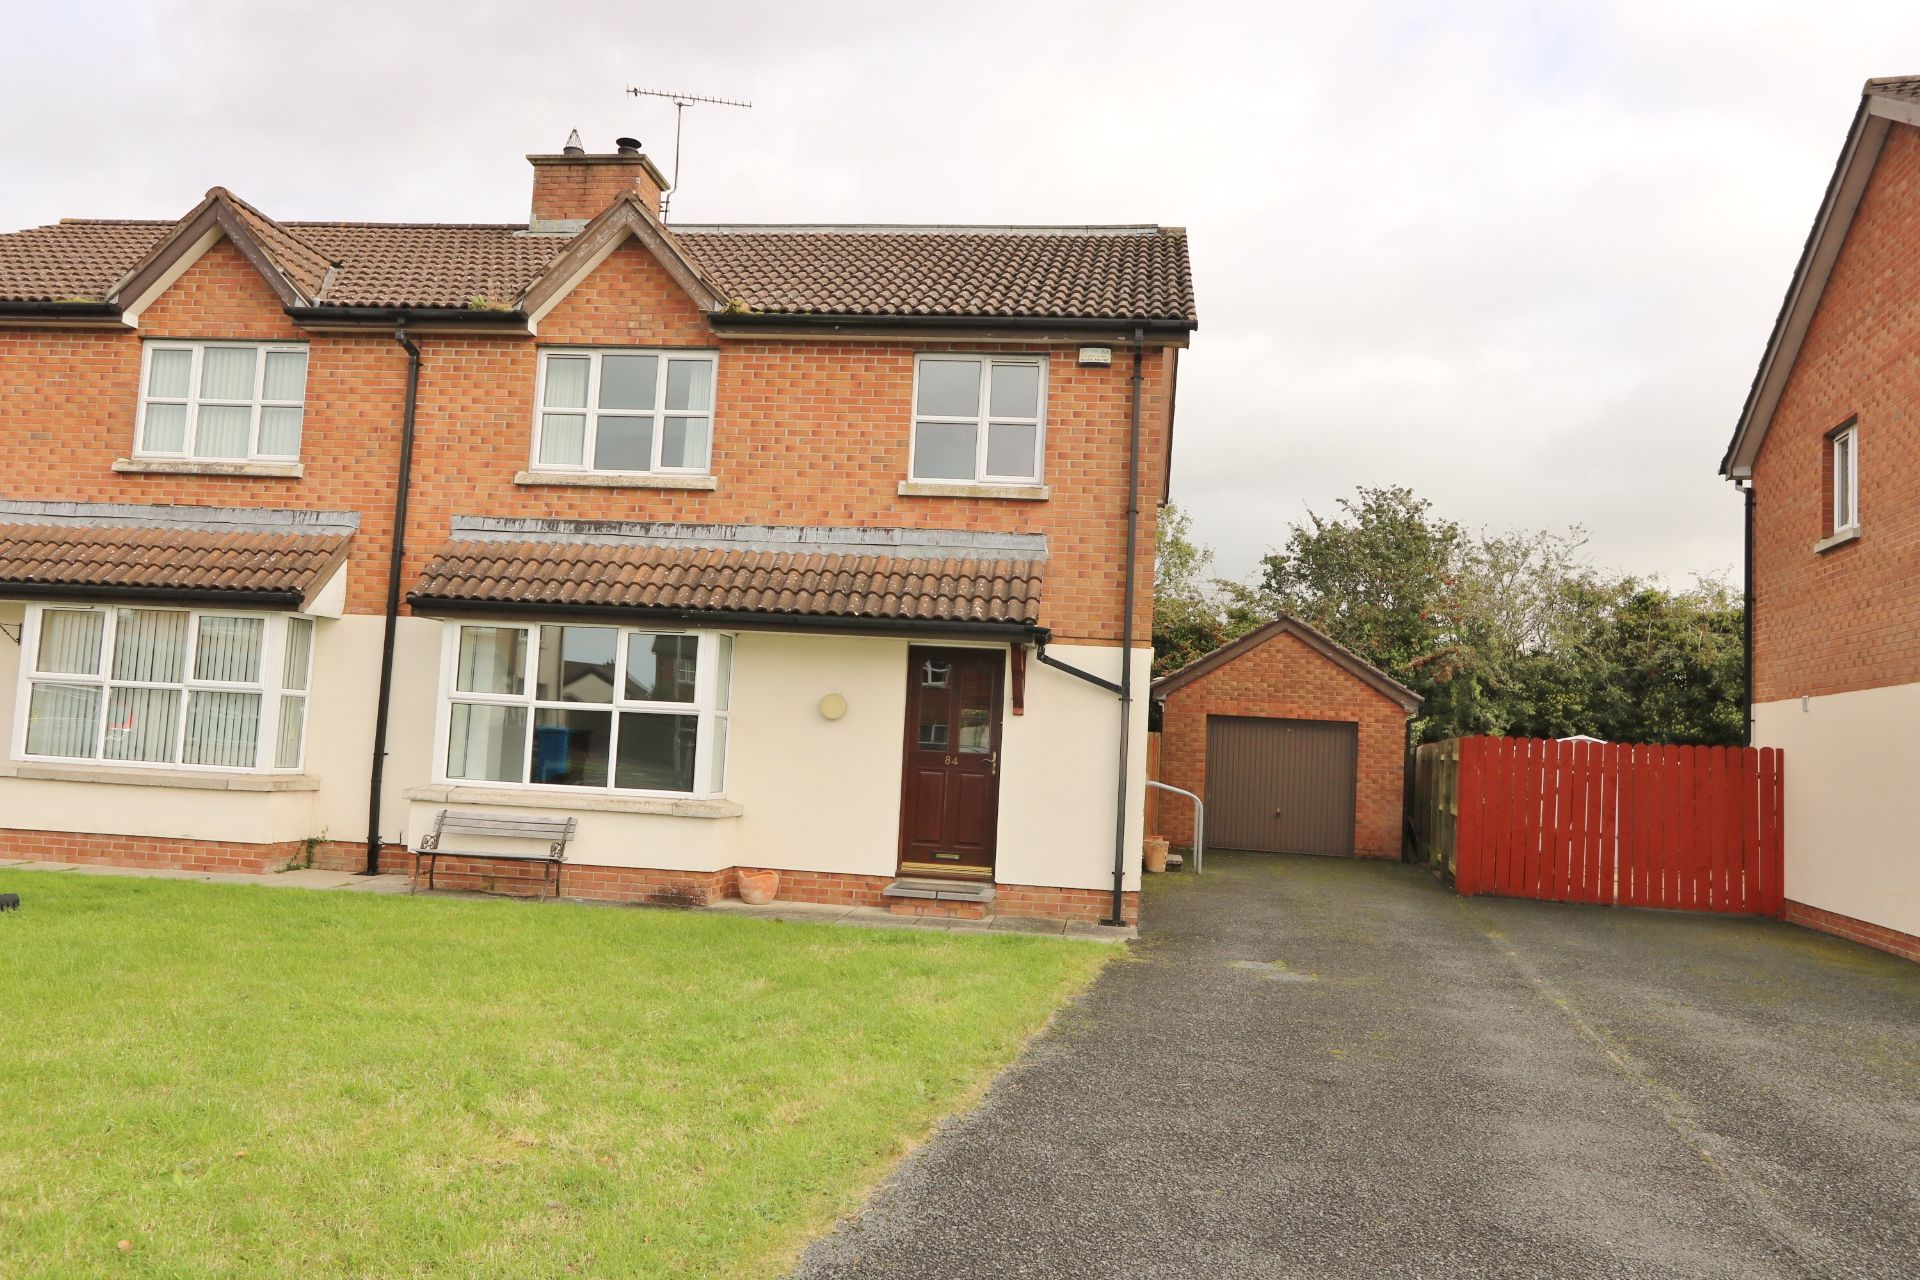 4 bedroom semi-detached house For Sale in Antrim - Property photograph